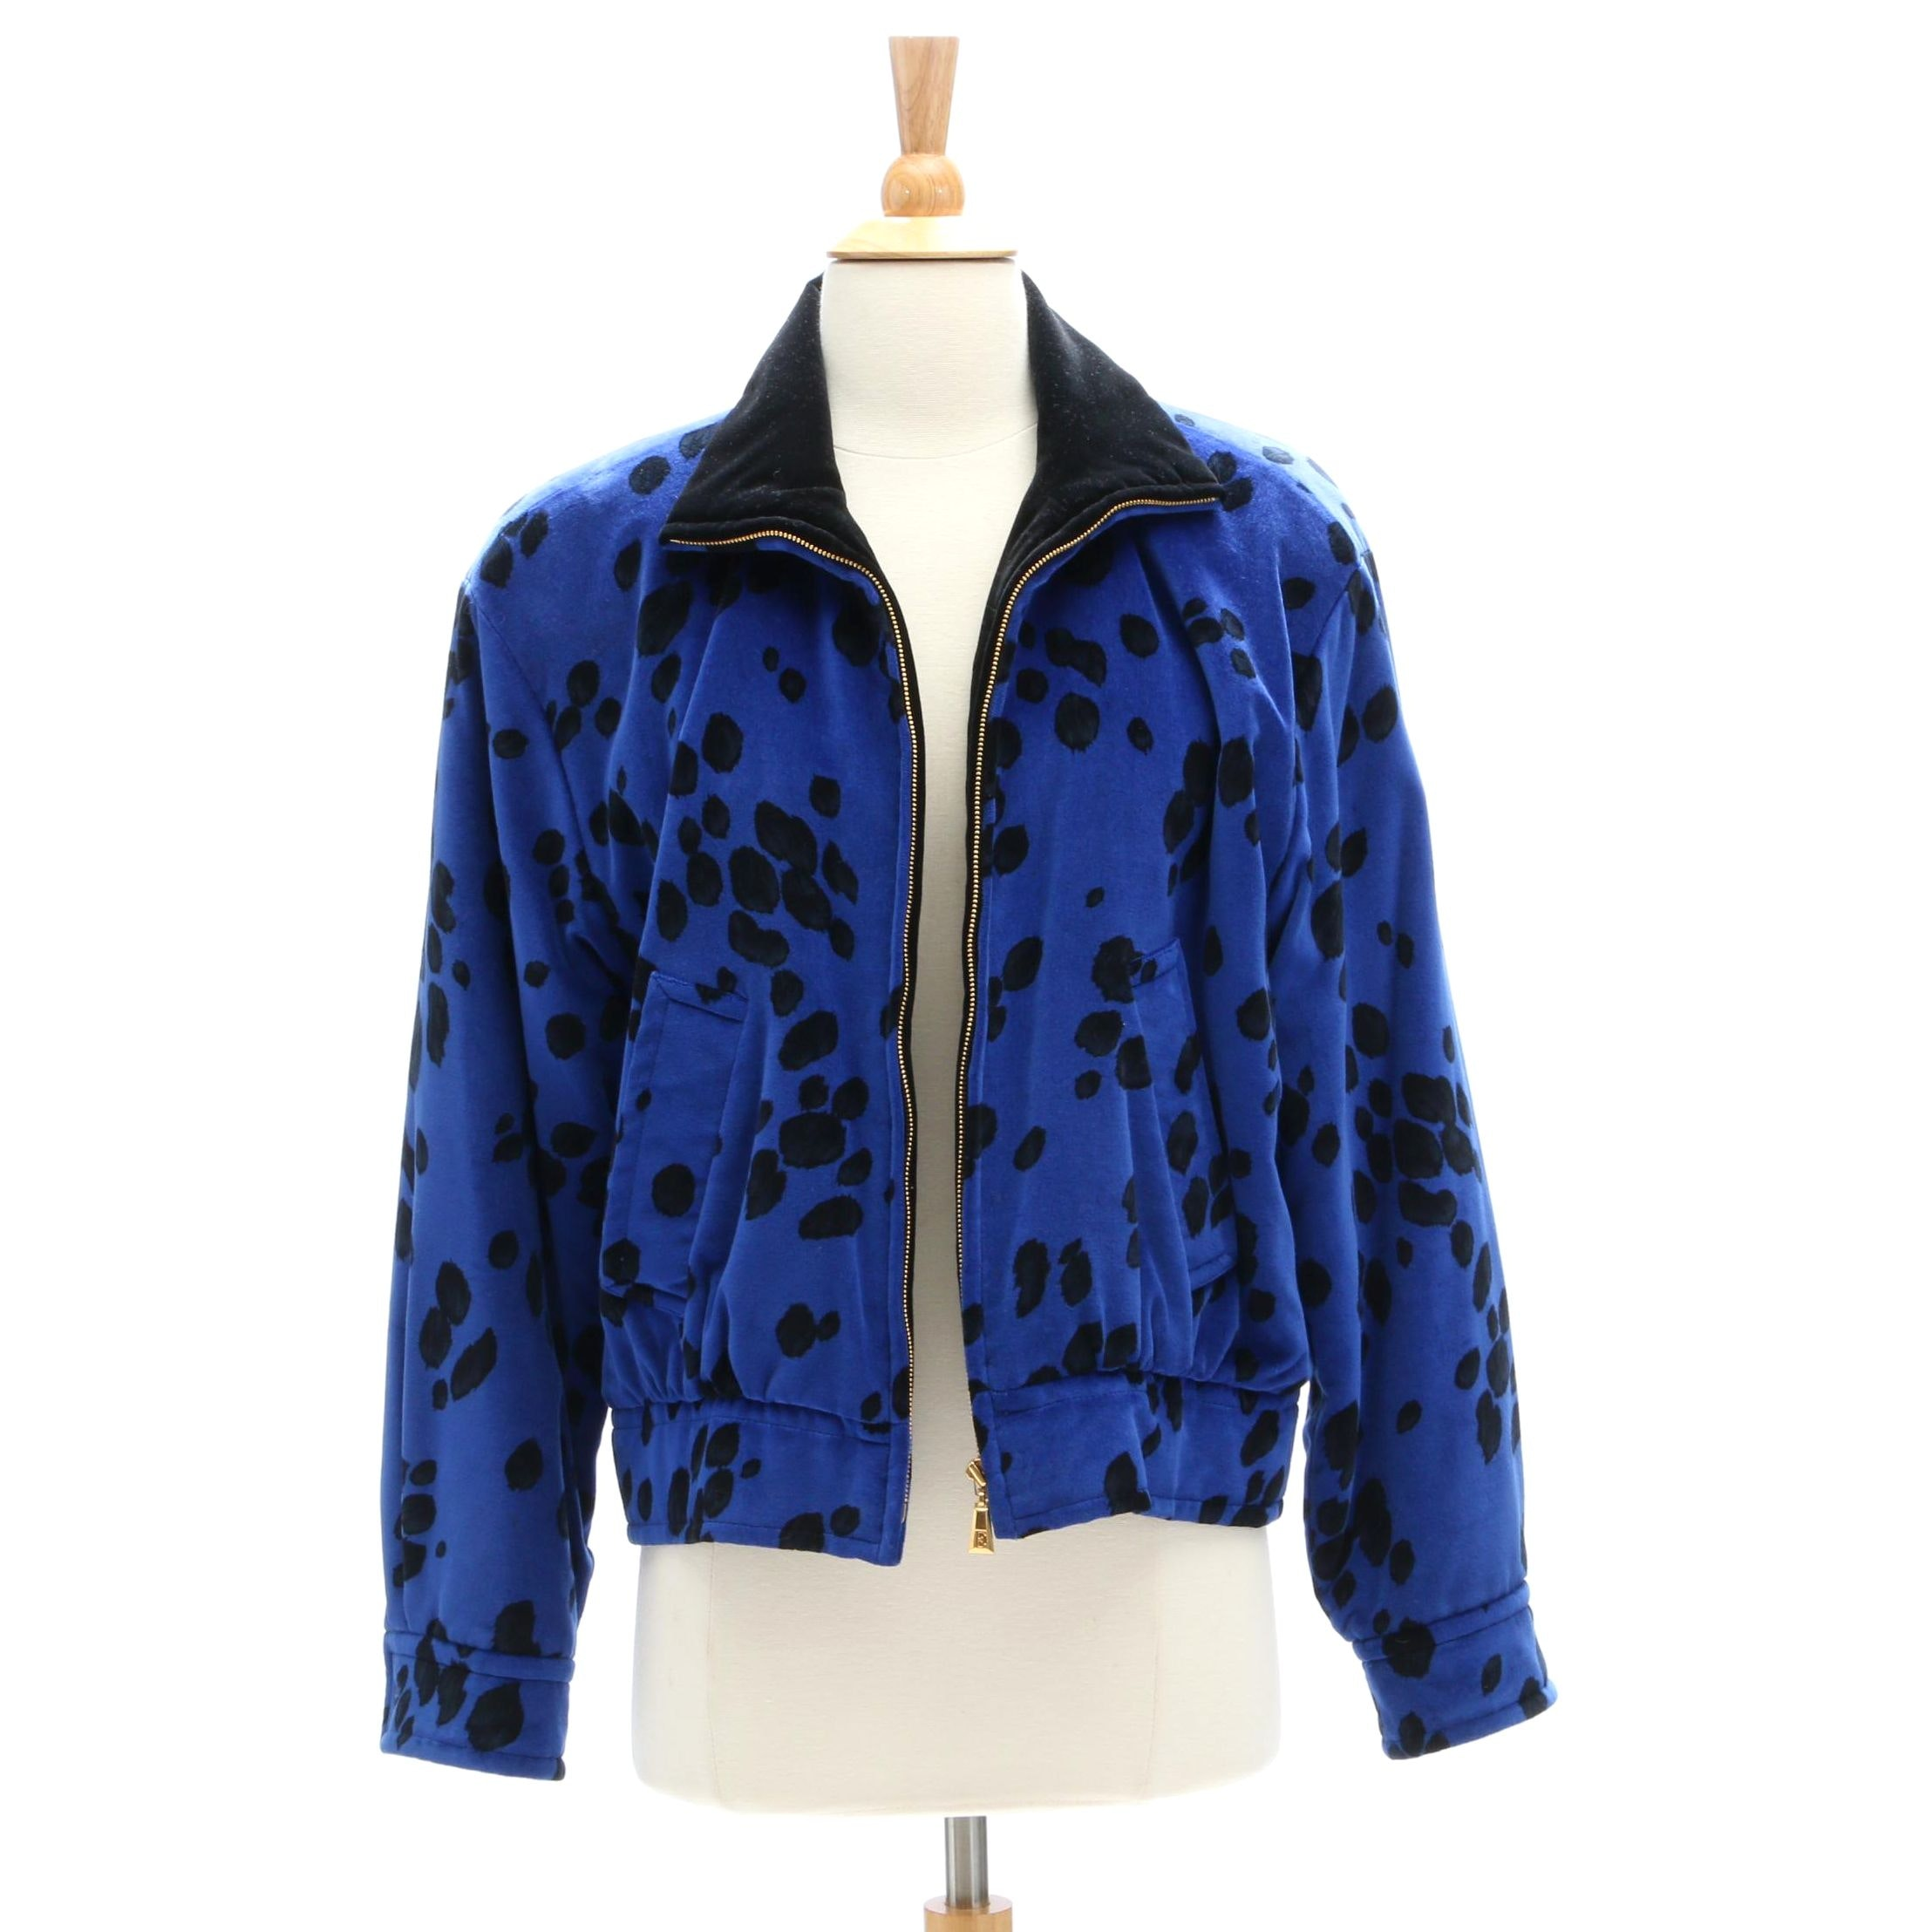 Escada Margaretha Ley Cheetah Print Jacket